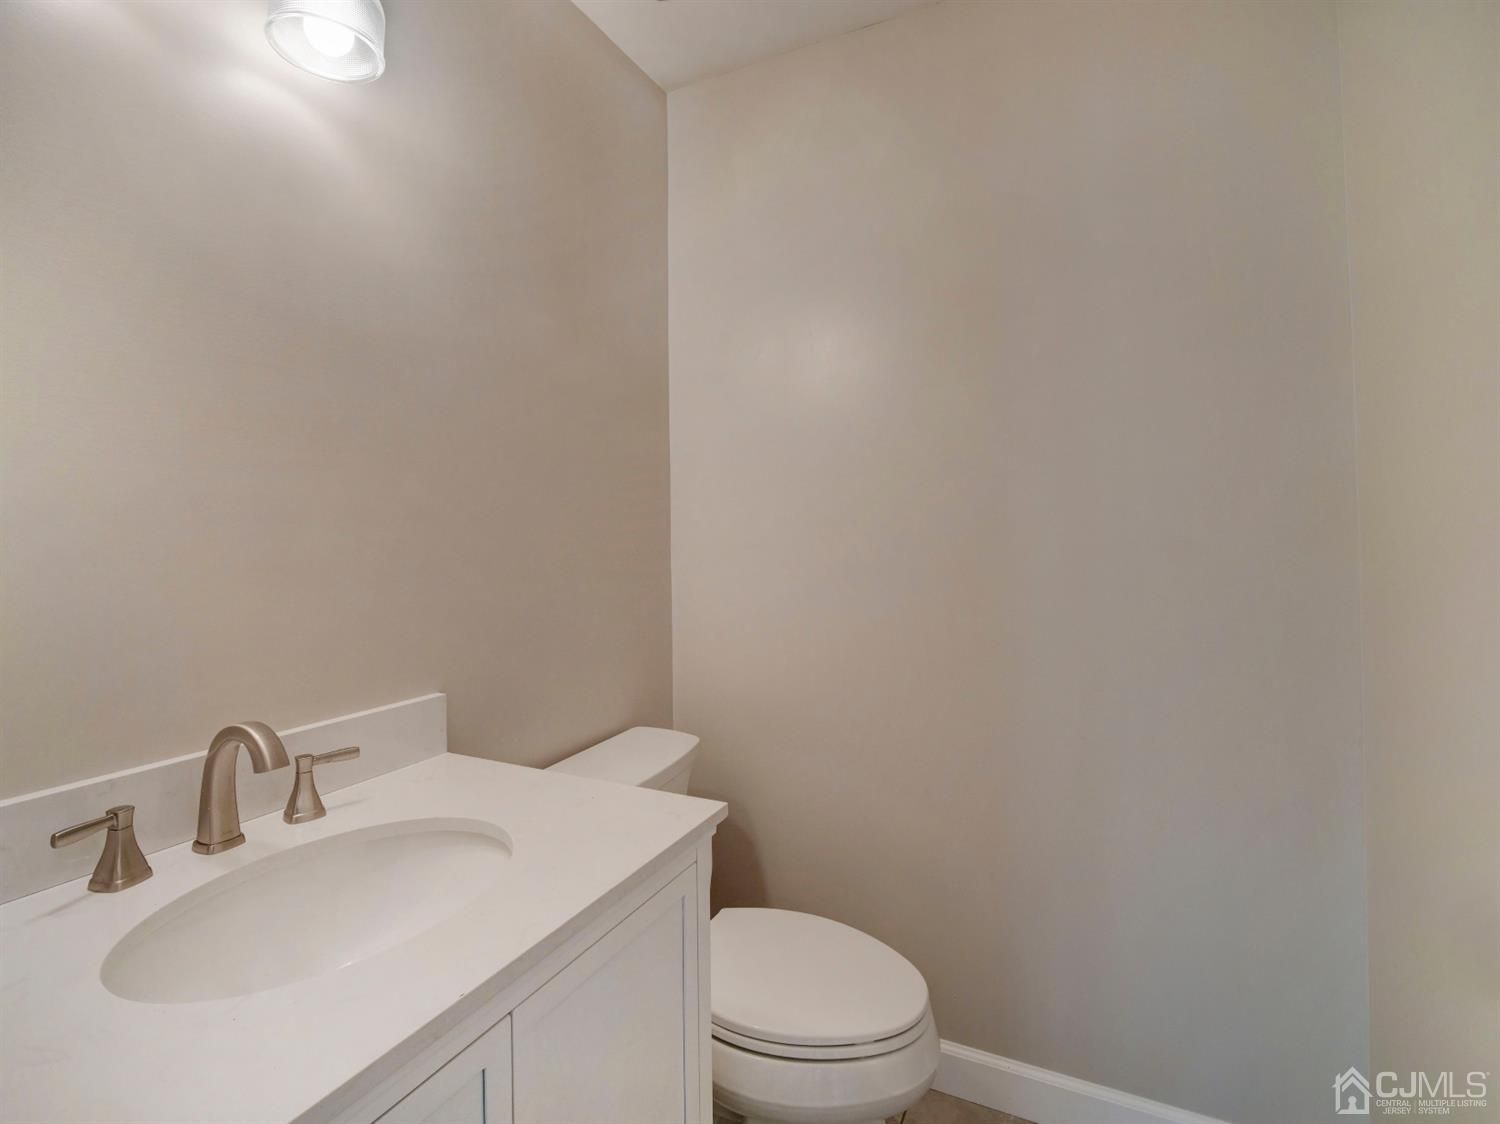 1/2 bath on 1st level with option to convert to a full bath